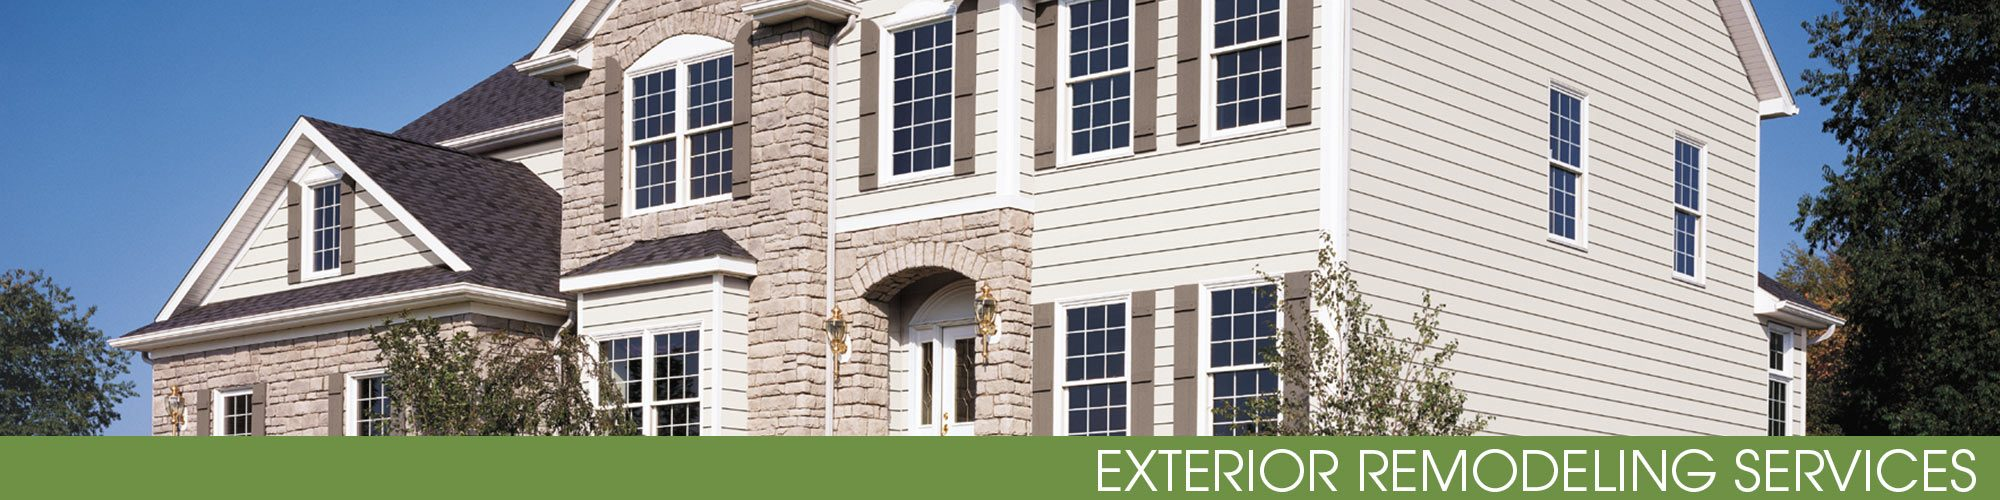 exterior remodeling Edwardsville il